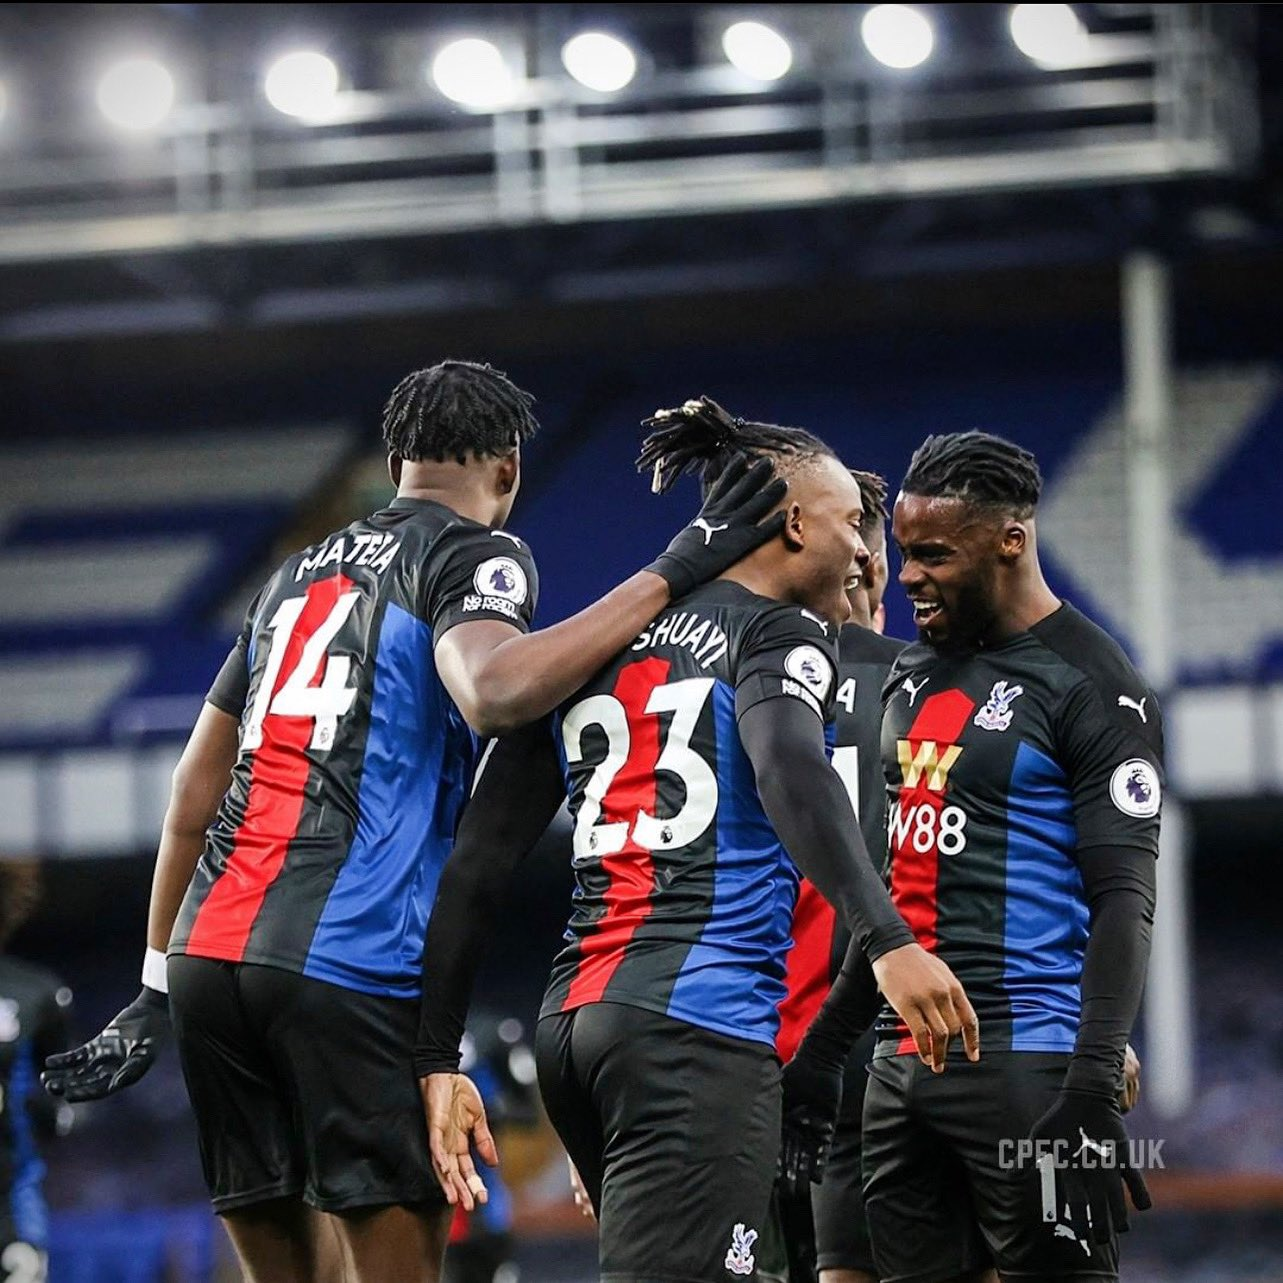 Ghana's Jeffrey Schlupp assists goal for Crystal Palace in draw against Everton